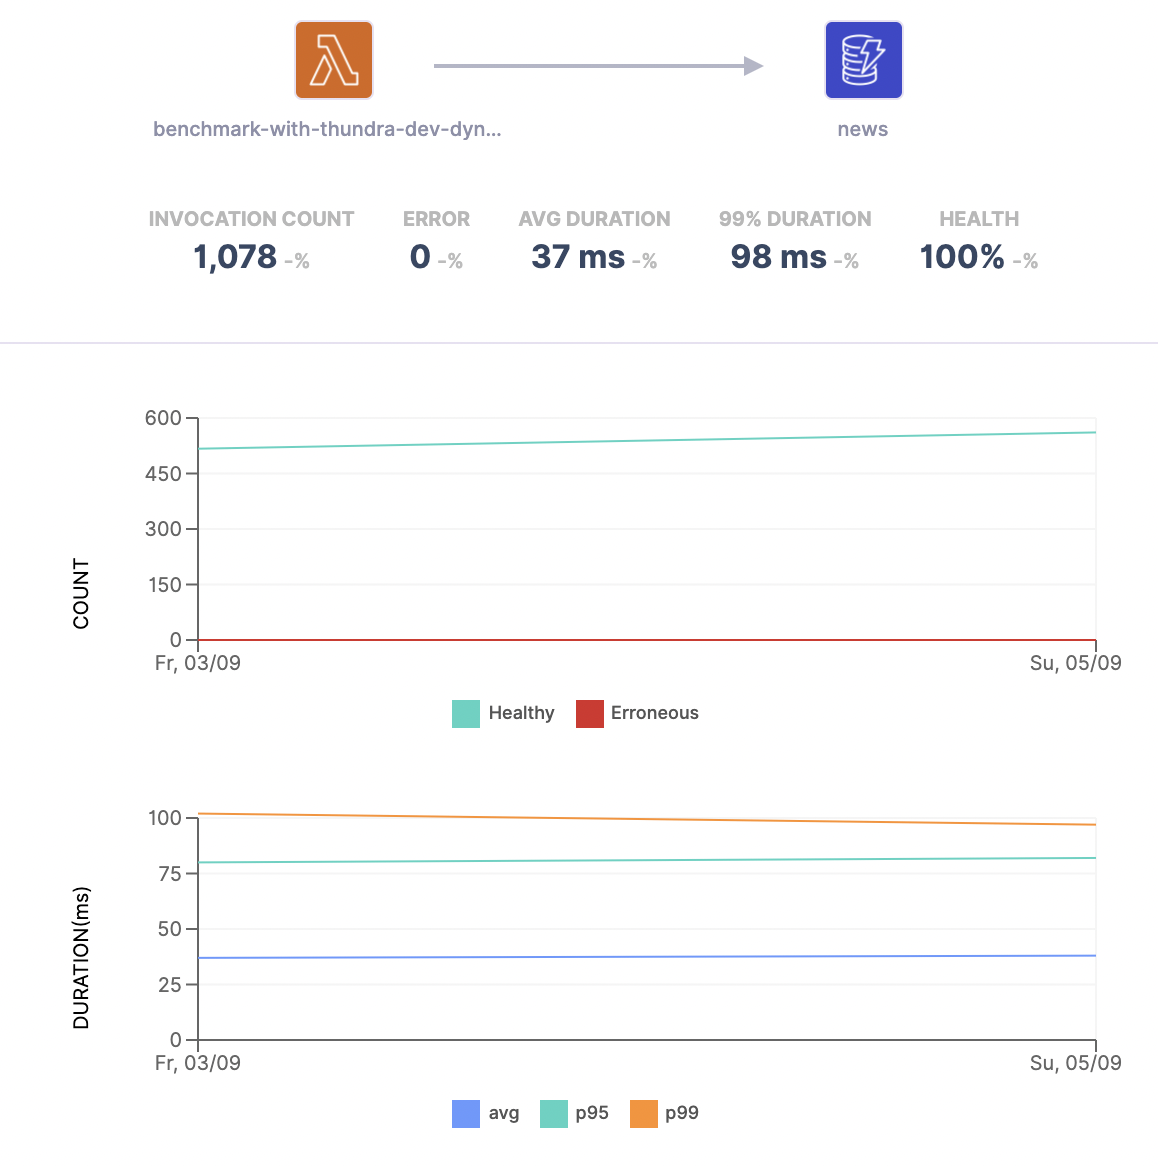 Count & duration charts of invocation durations - DynamoDB